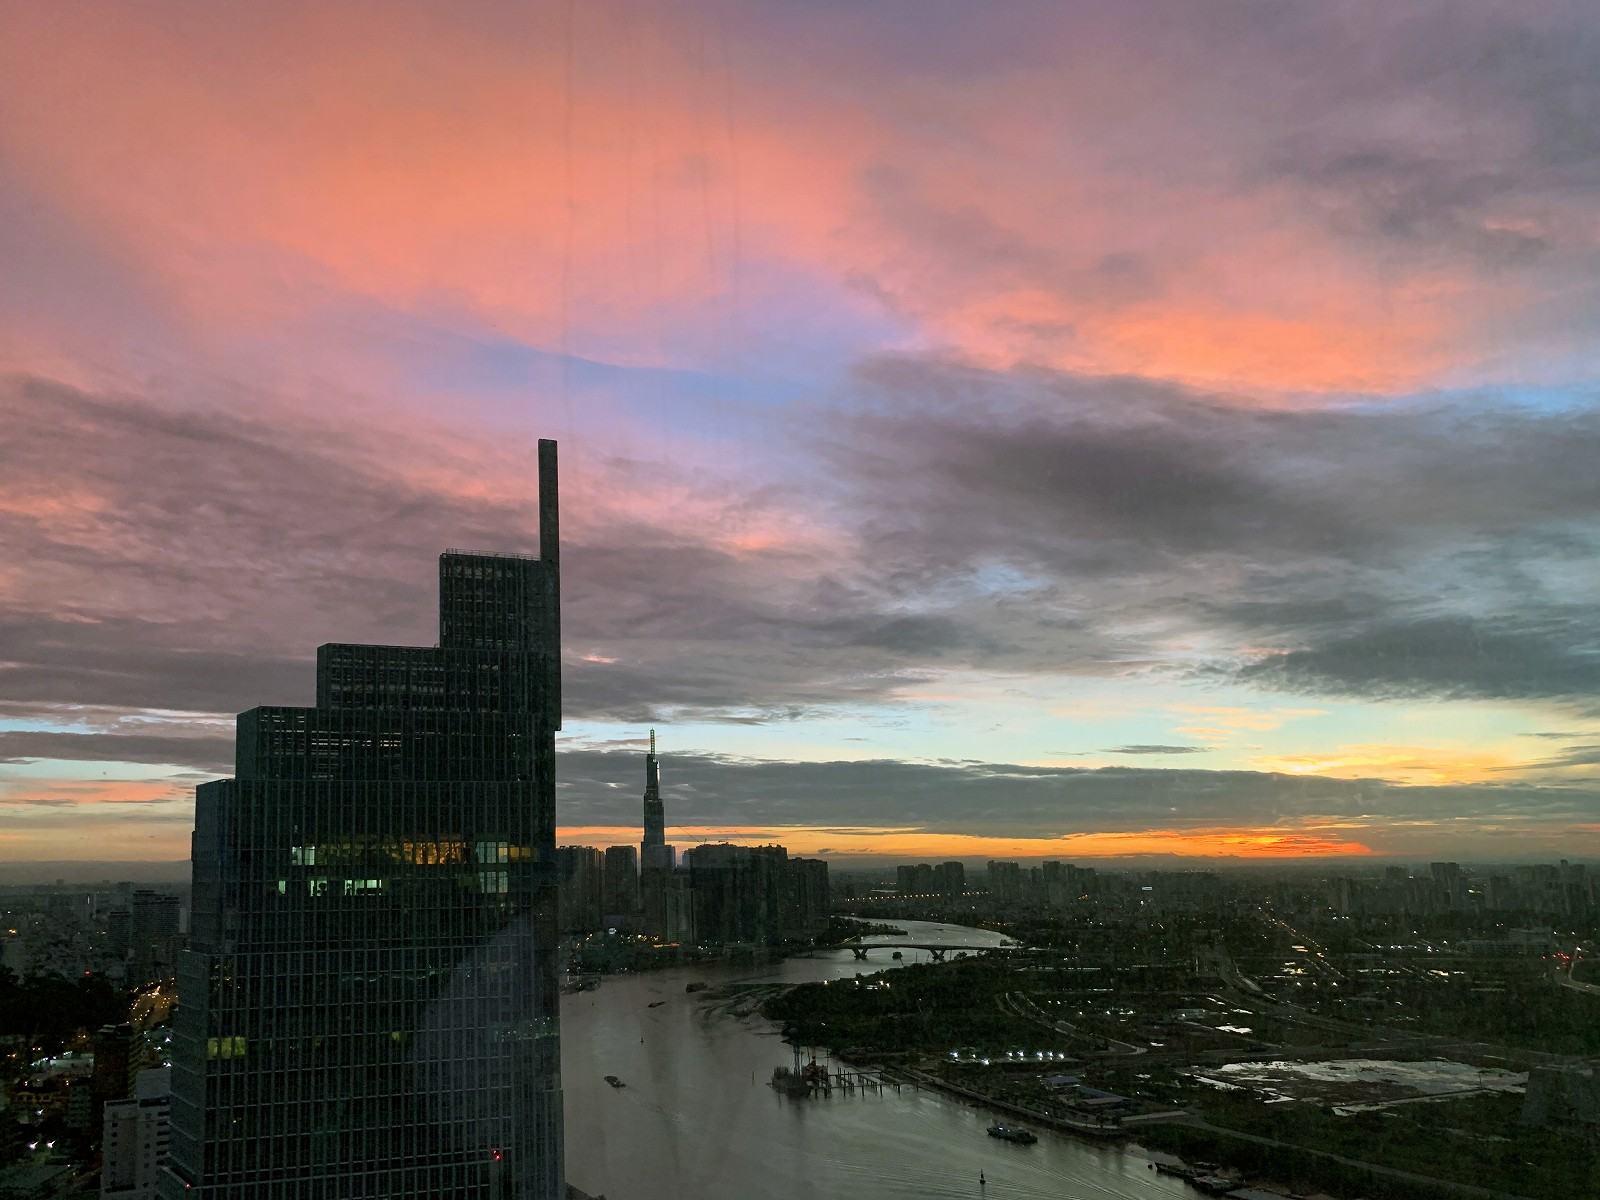 Sunrise at The Reverie Saigon (Panorama Deluxe)